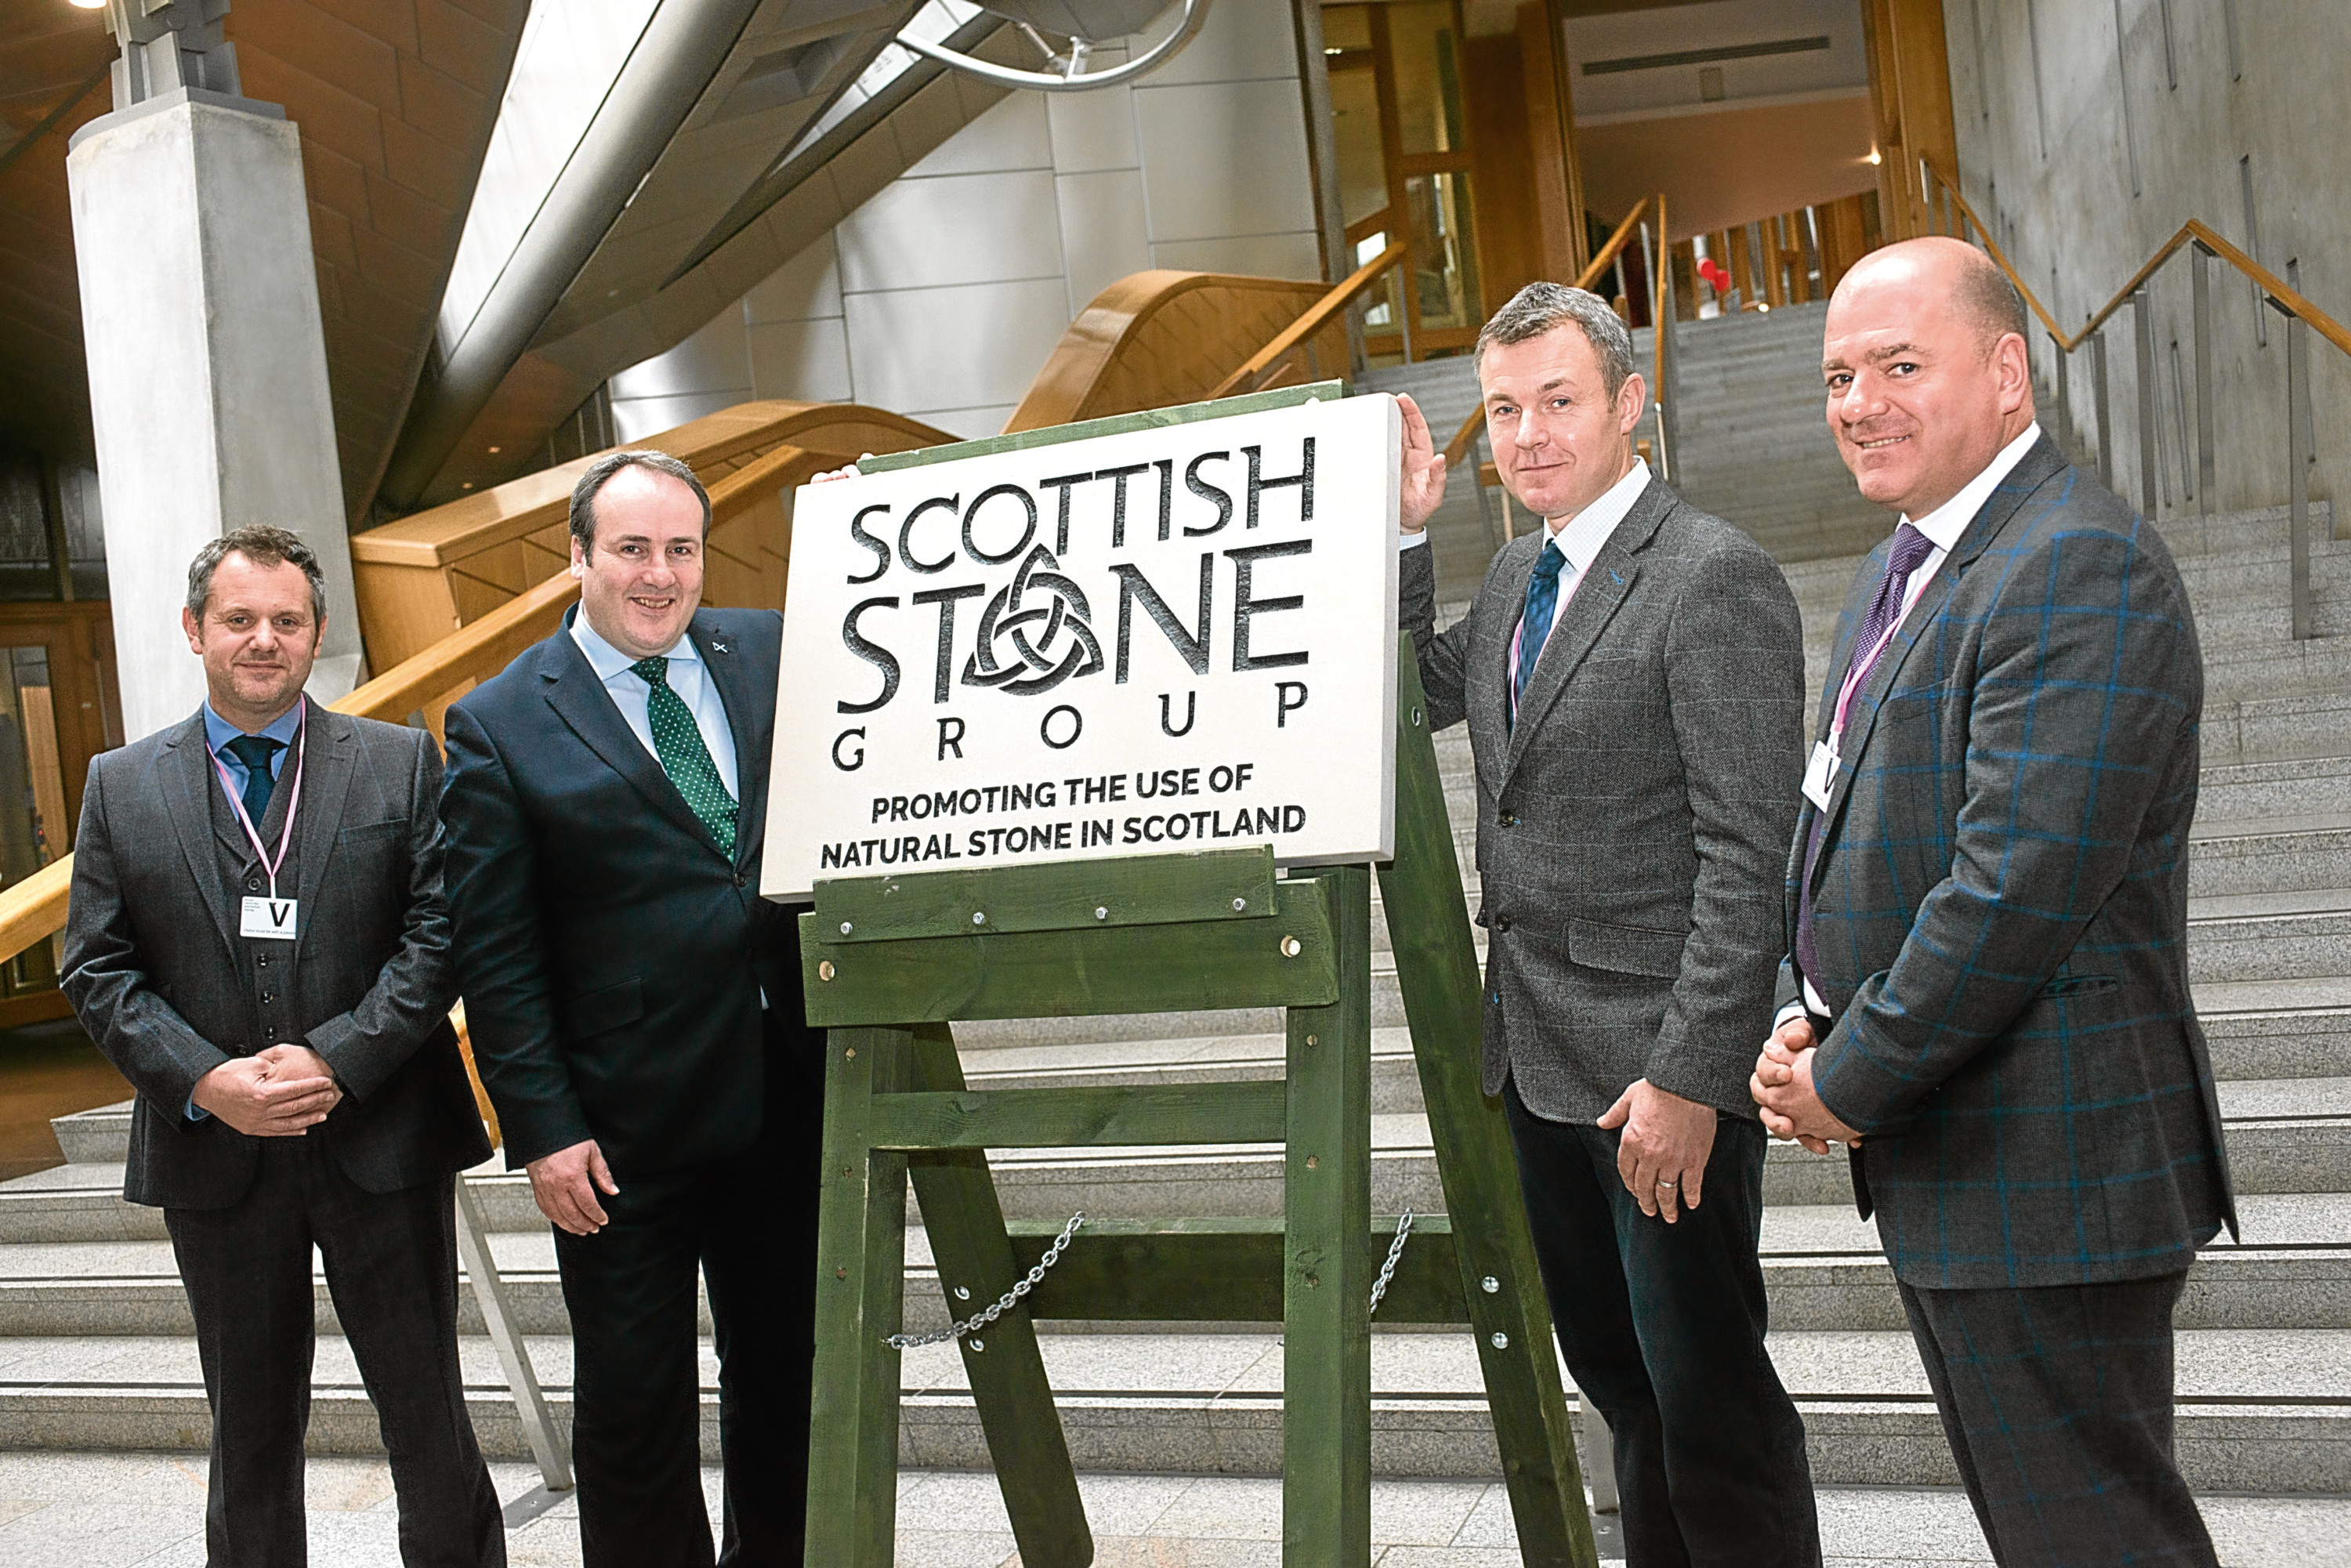 Paul Wheelhouse MSP (second from left) meets with the founding members of Scottish Stone Group (L-R) Marcus Paine (Hutton Stone), Peter Stewart (Tradstocks) and Brian Binnie (Denfind Stone).